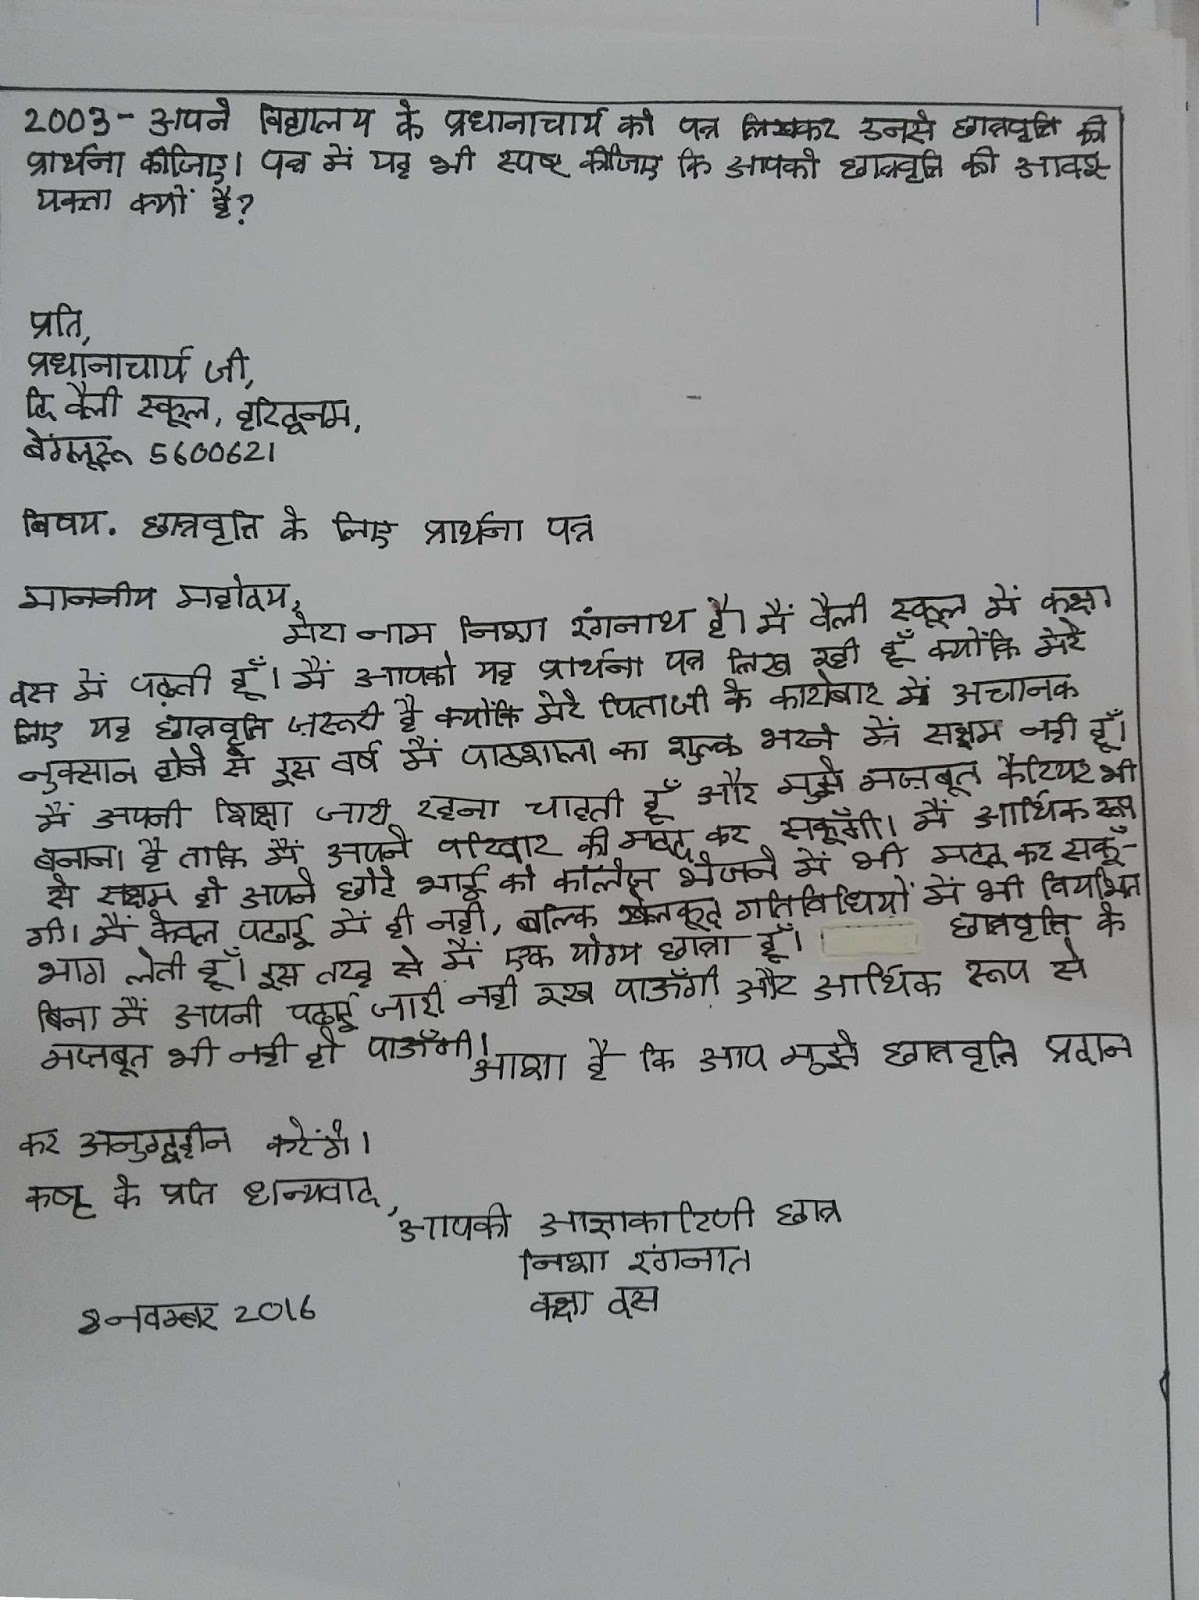 application to principal for grant of scholarship